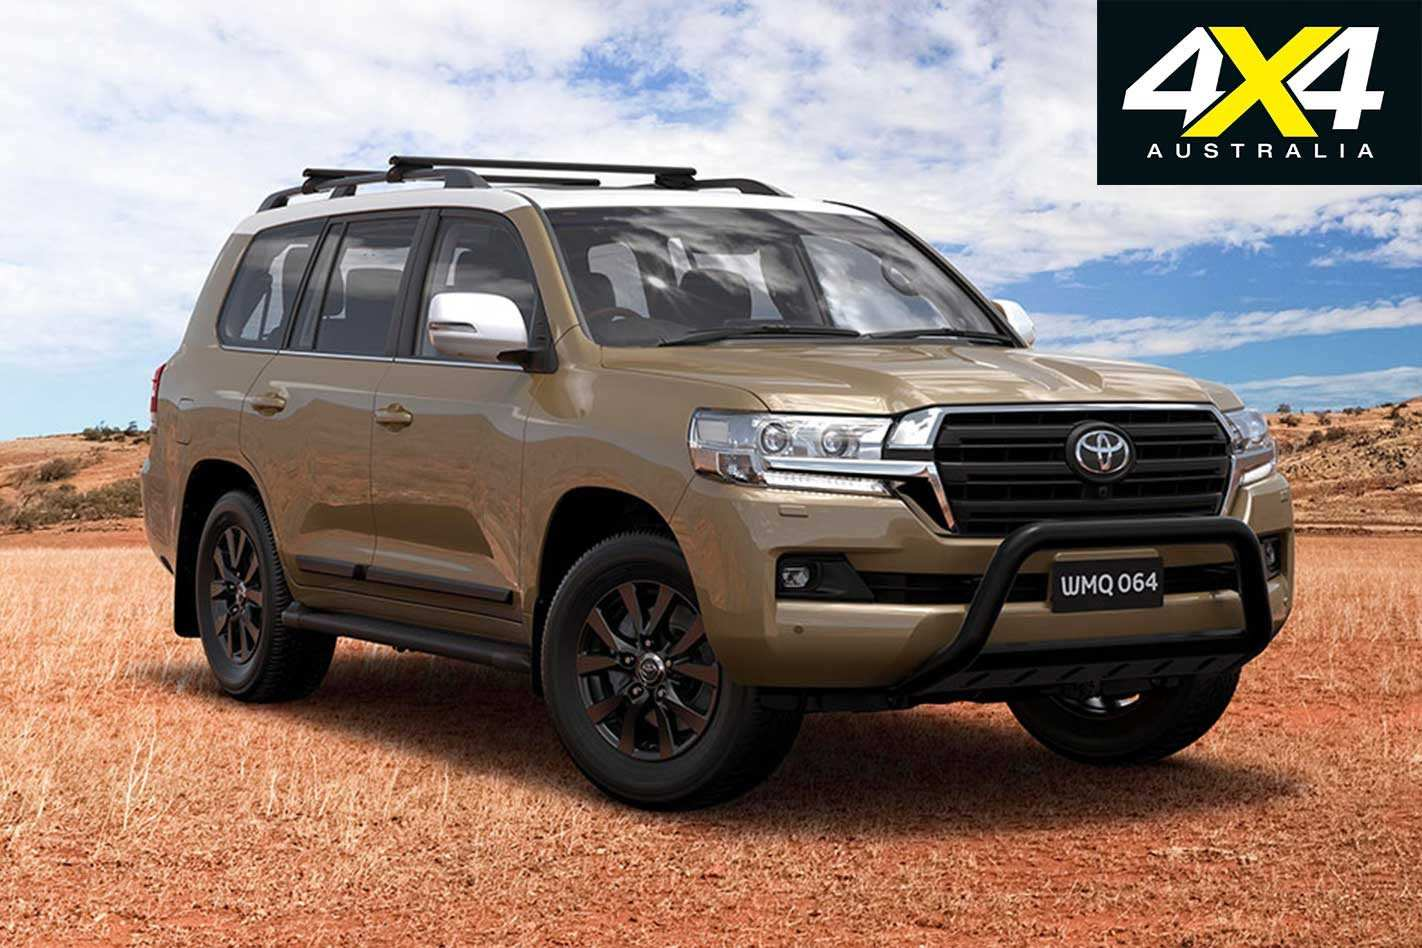 91 All New 2020 Toyota Land Cruiser Research New